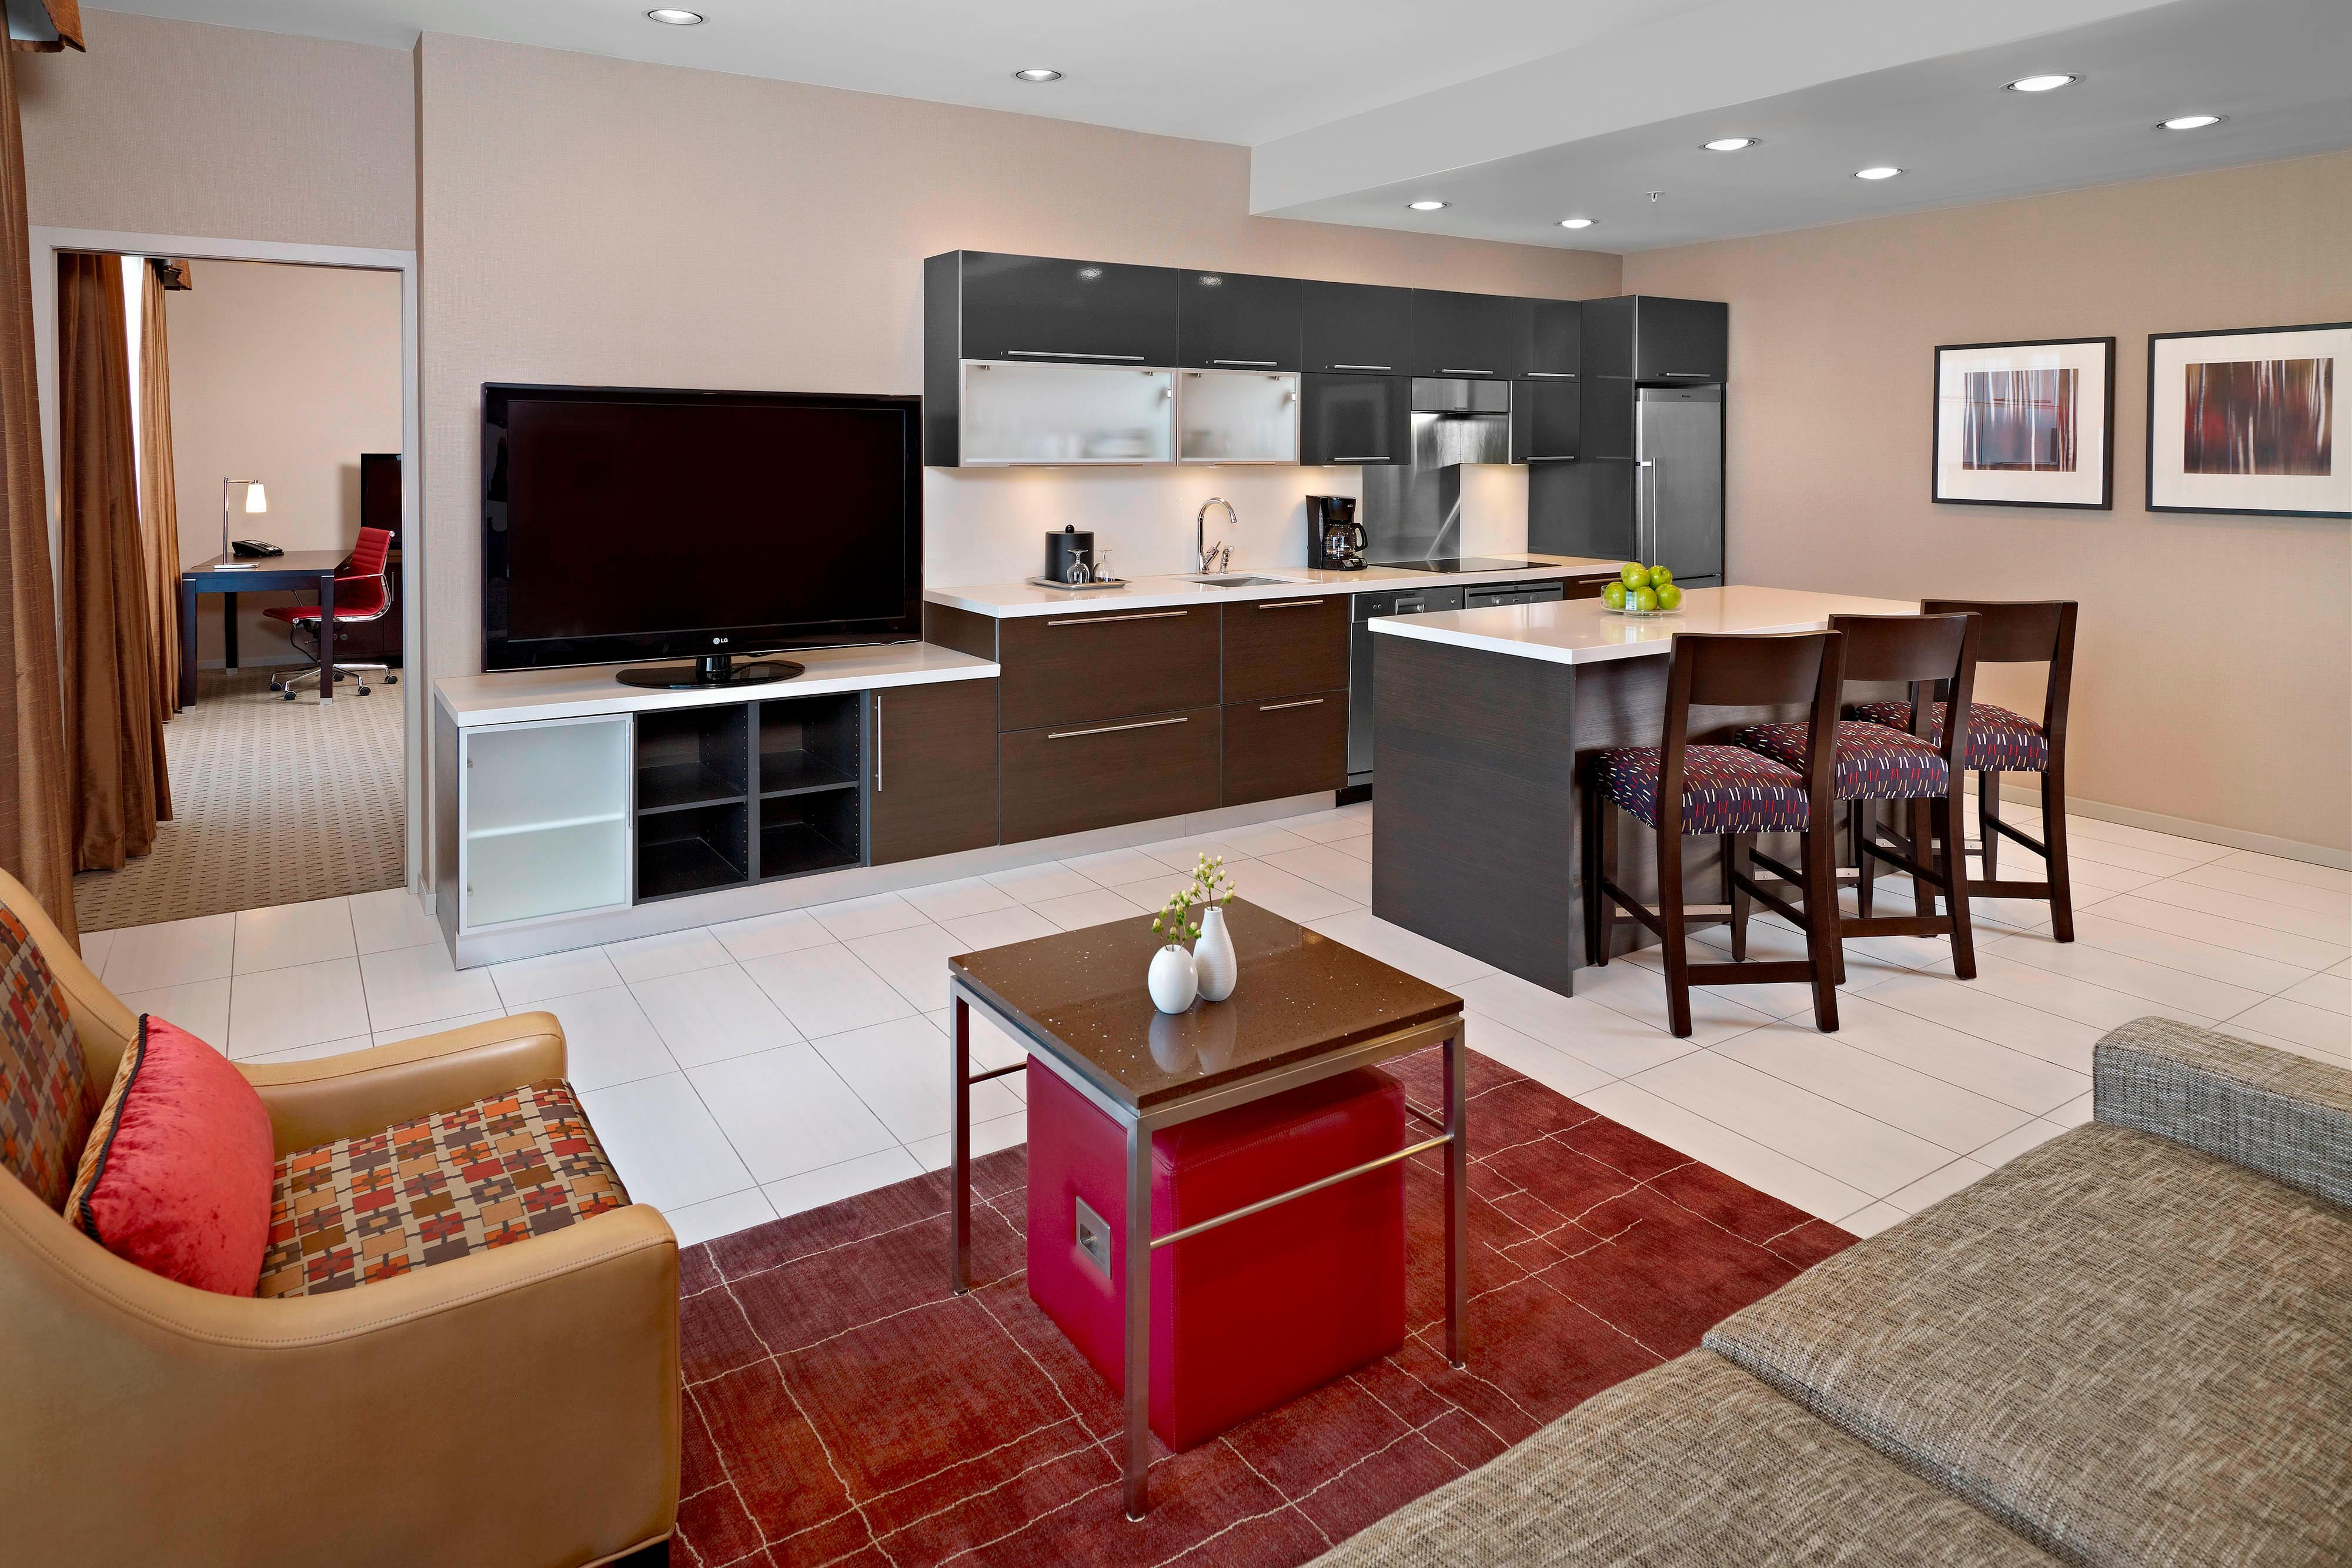 Penthouse Suite Kitchen & Living Area